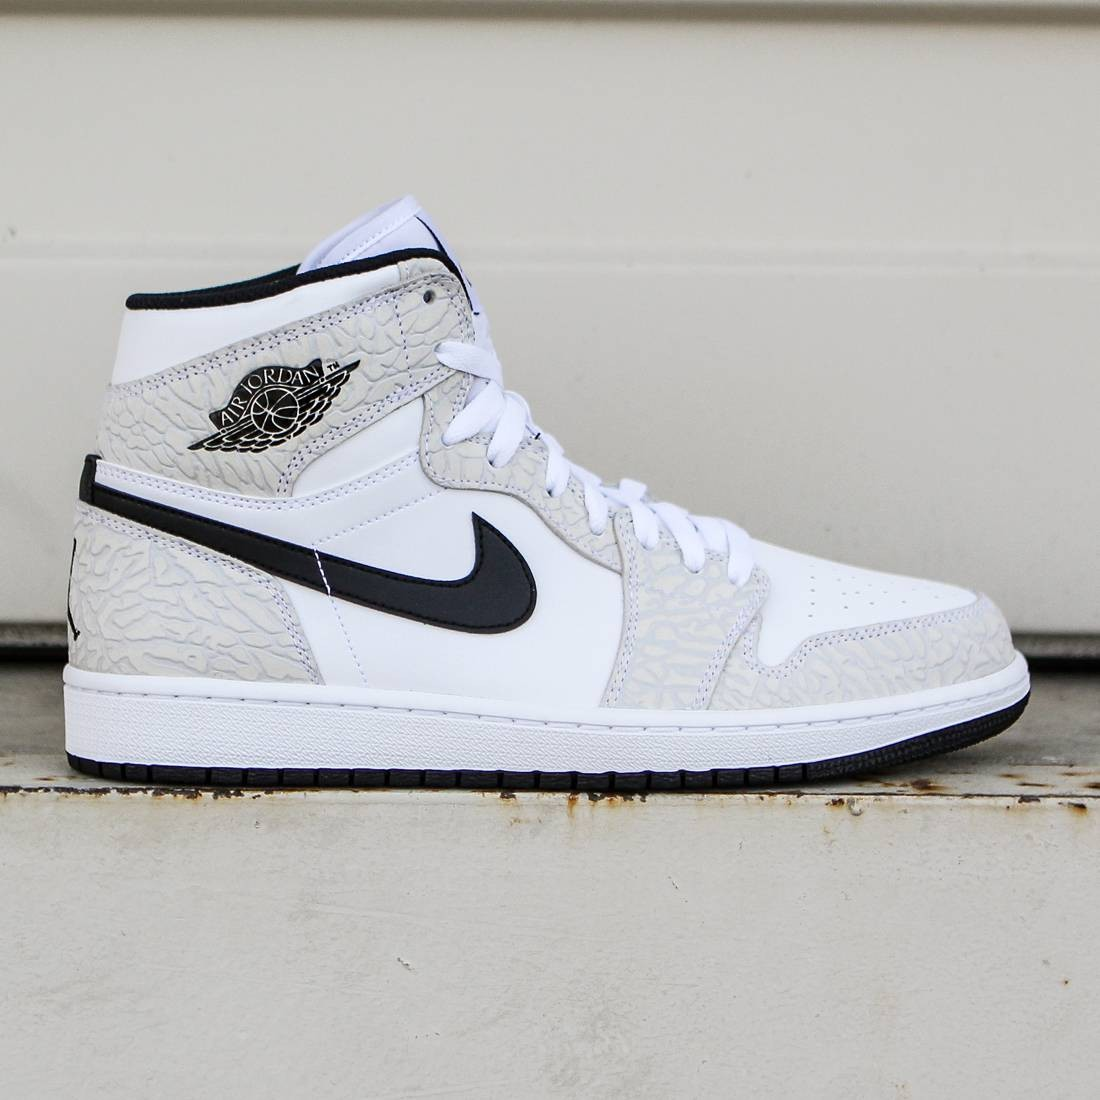 94563e6ebf5e Jordan Men Air Jordan 1 Retro High (white   black   pure platinum)